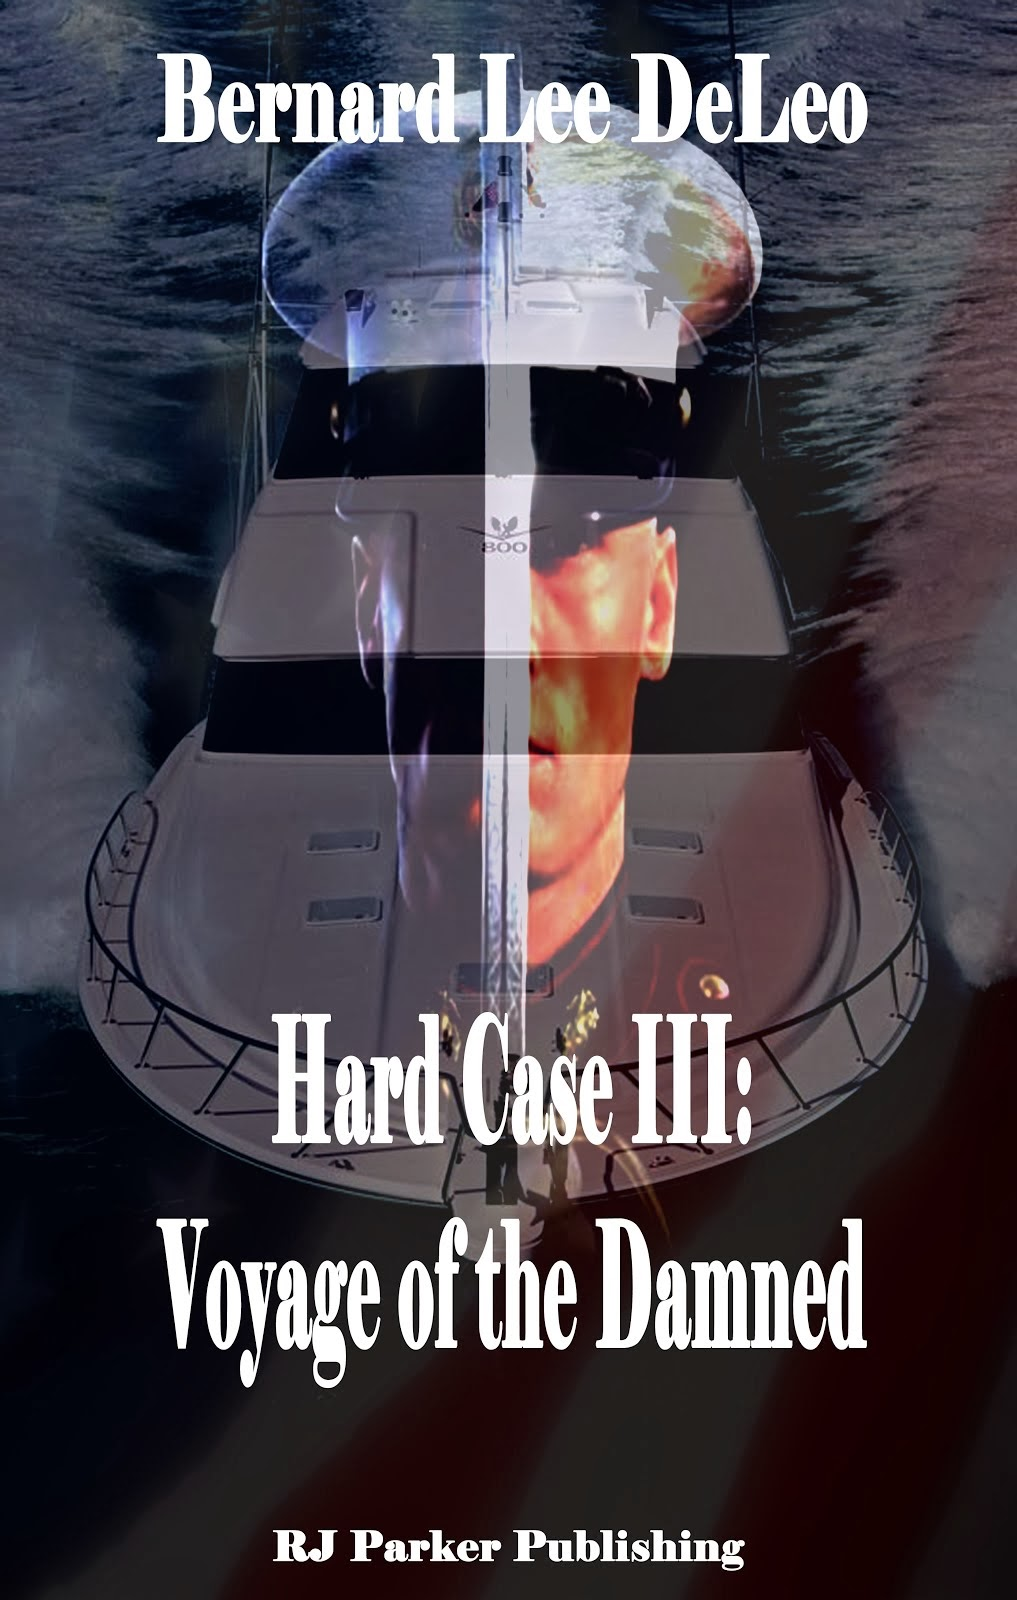 Hard Case III: Voyage of the Damned